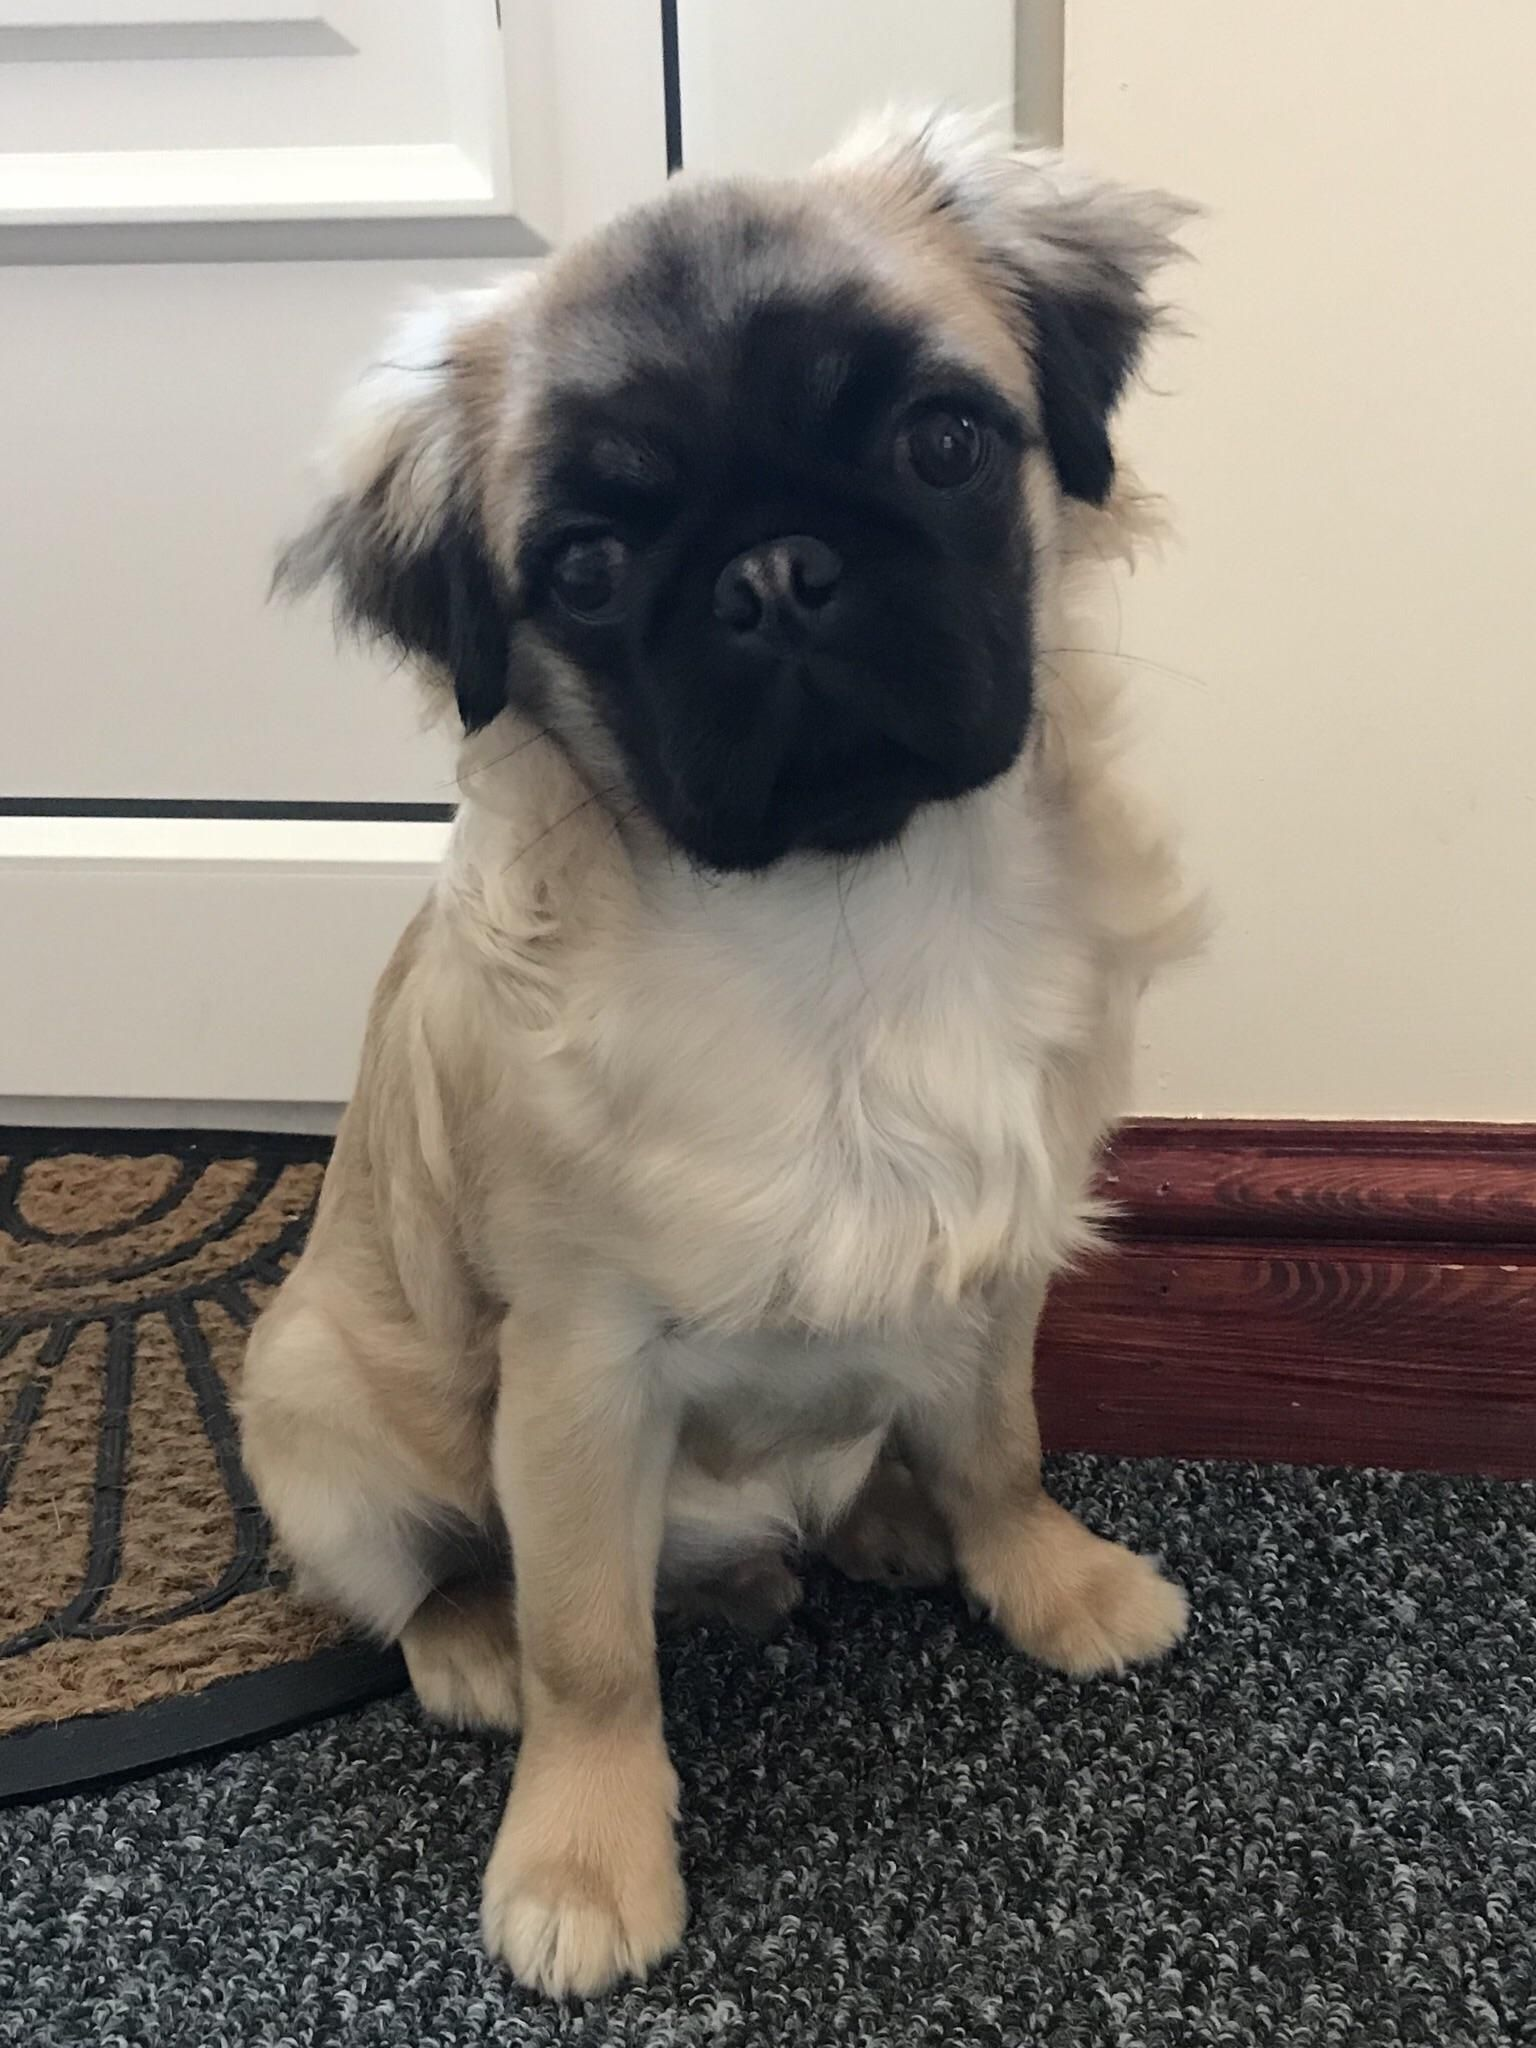 Meet Percy The Long Haired Pug He Is 5 Months Old This Week Hes